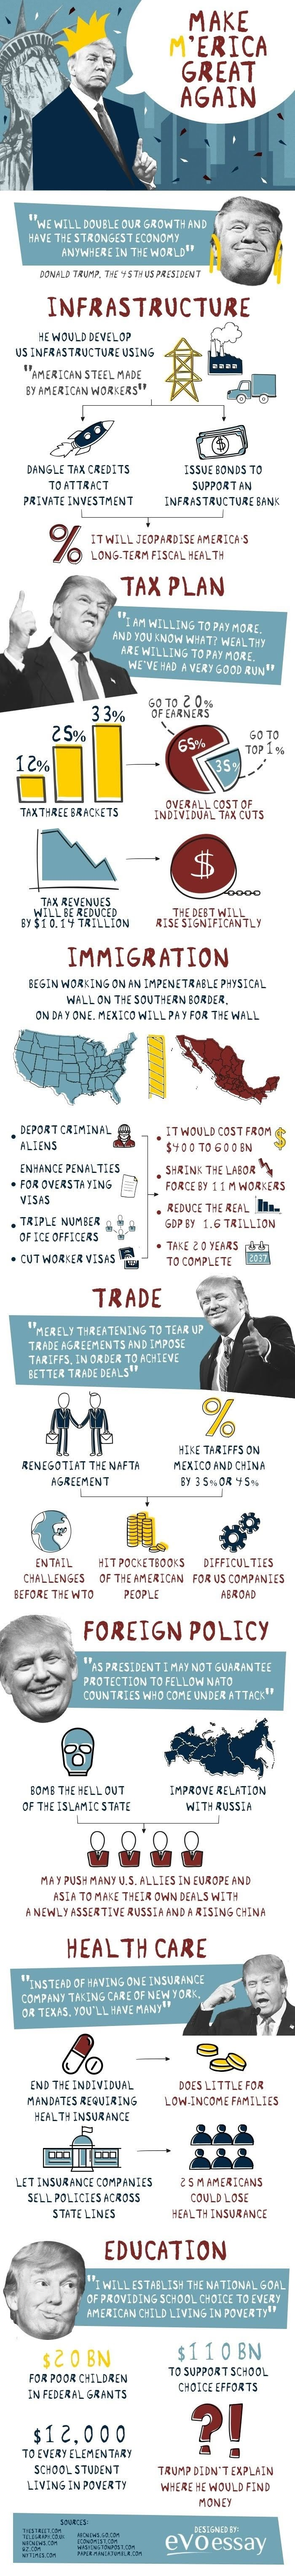 Does America again become incredible? #infographic